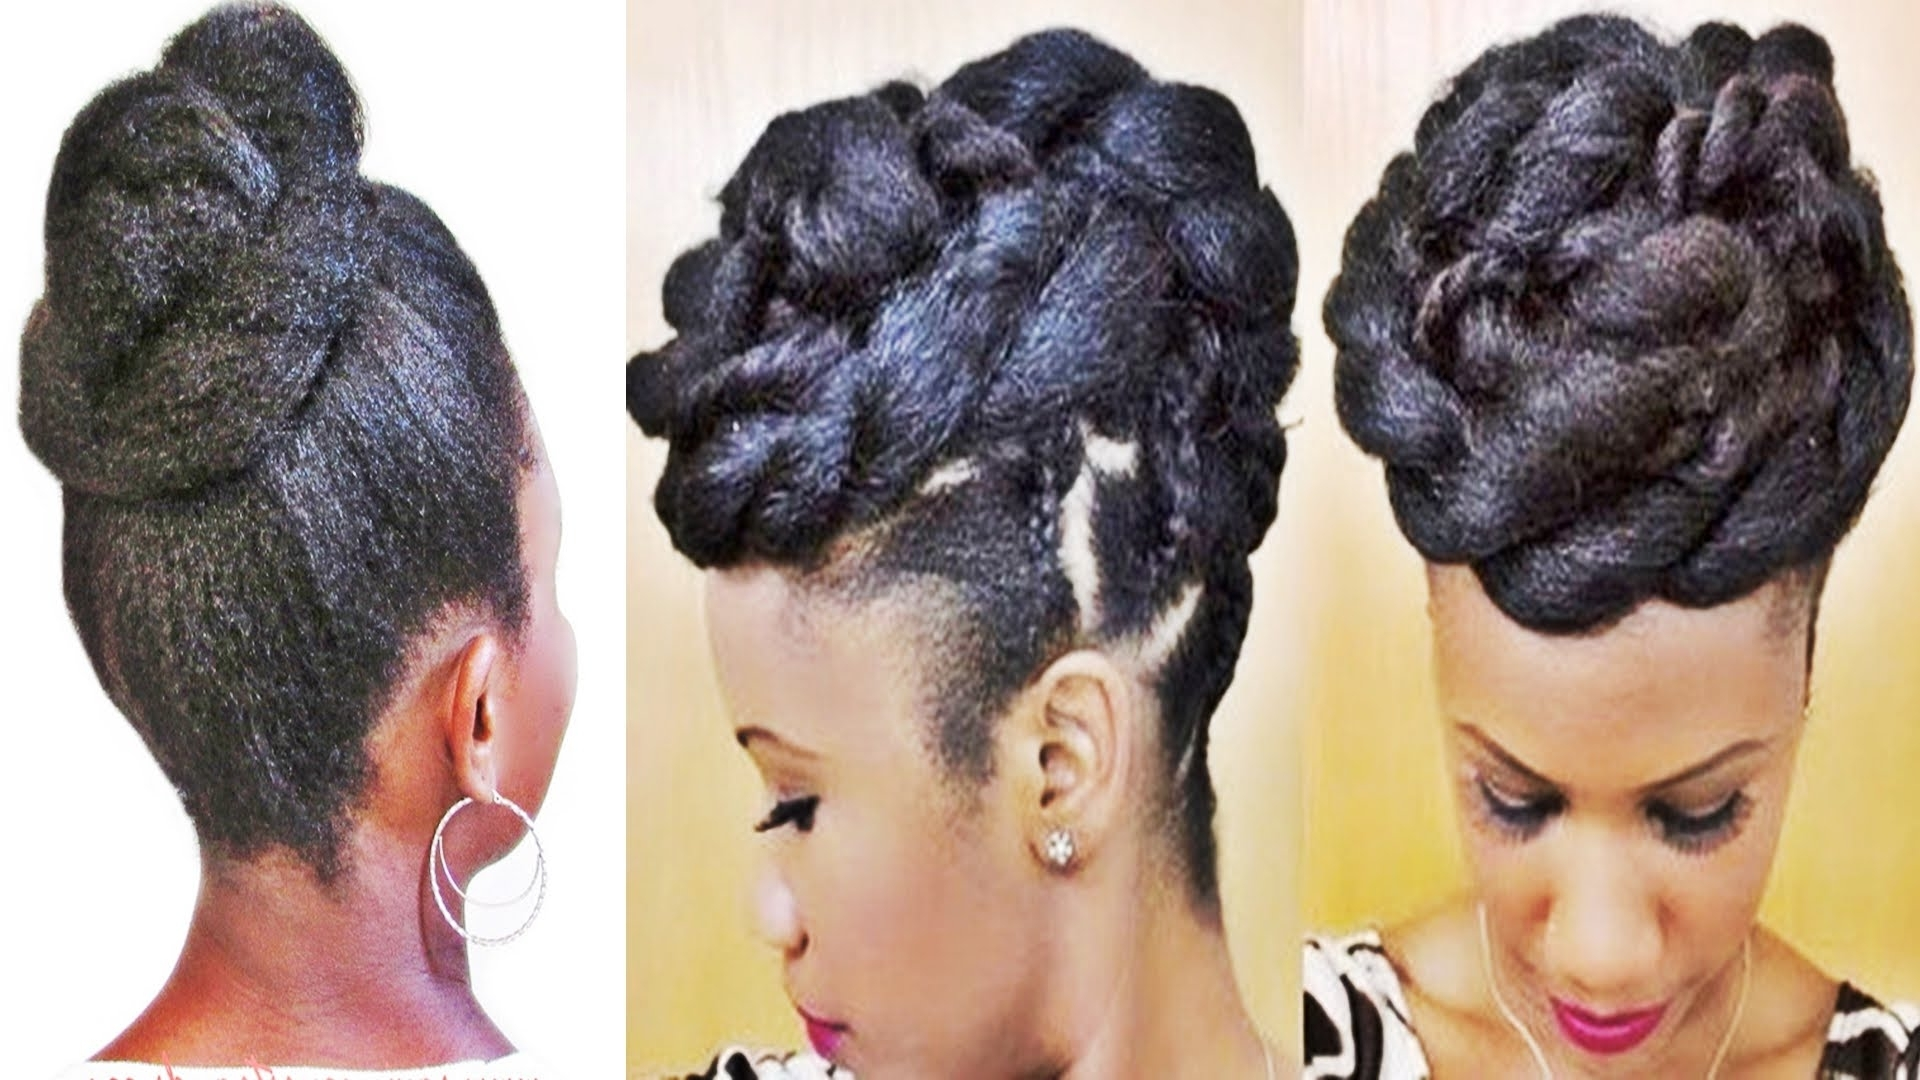 Braids And Twists Updo Hairstyle For Black Women – Youtube Throughout Black Updo Hairstyles For Long Hair (View 8 of 15)